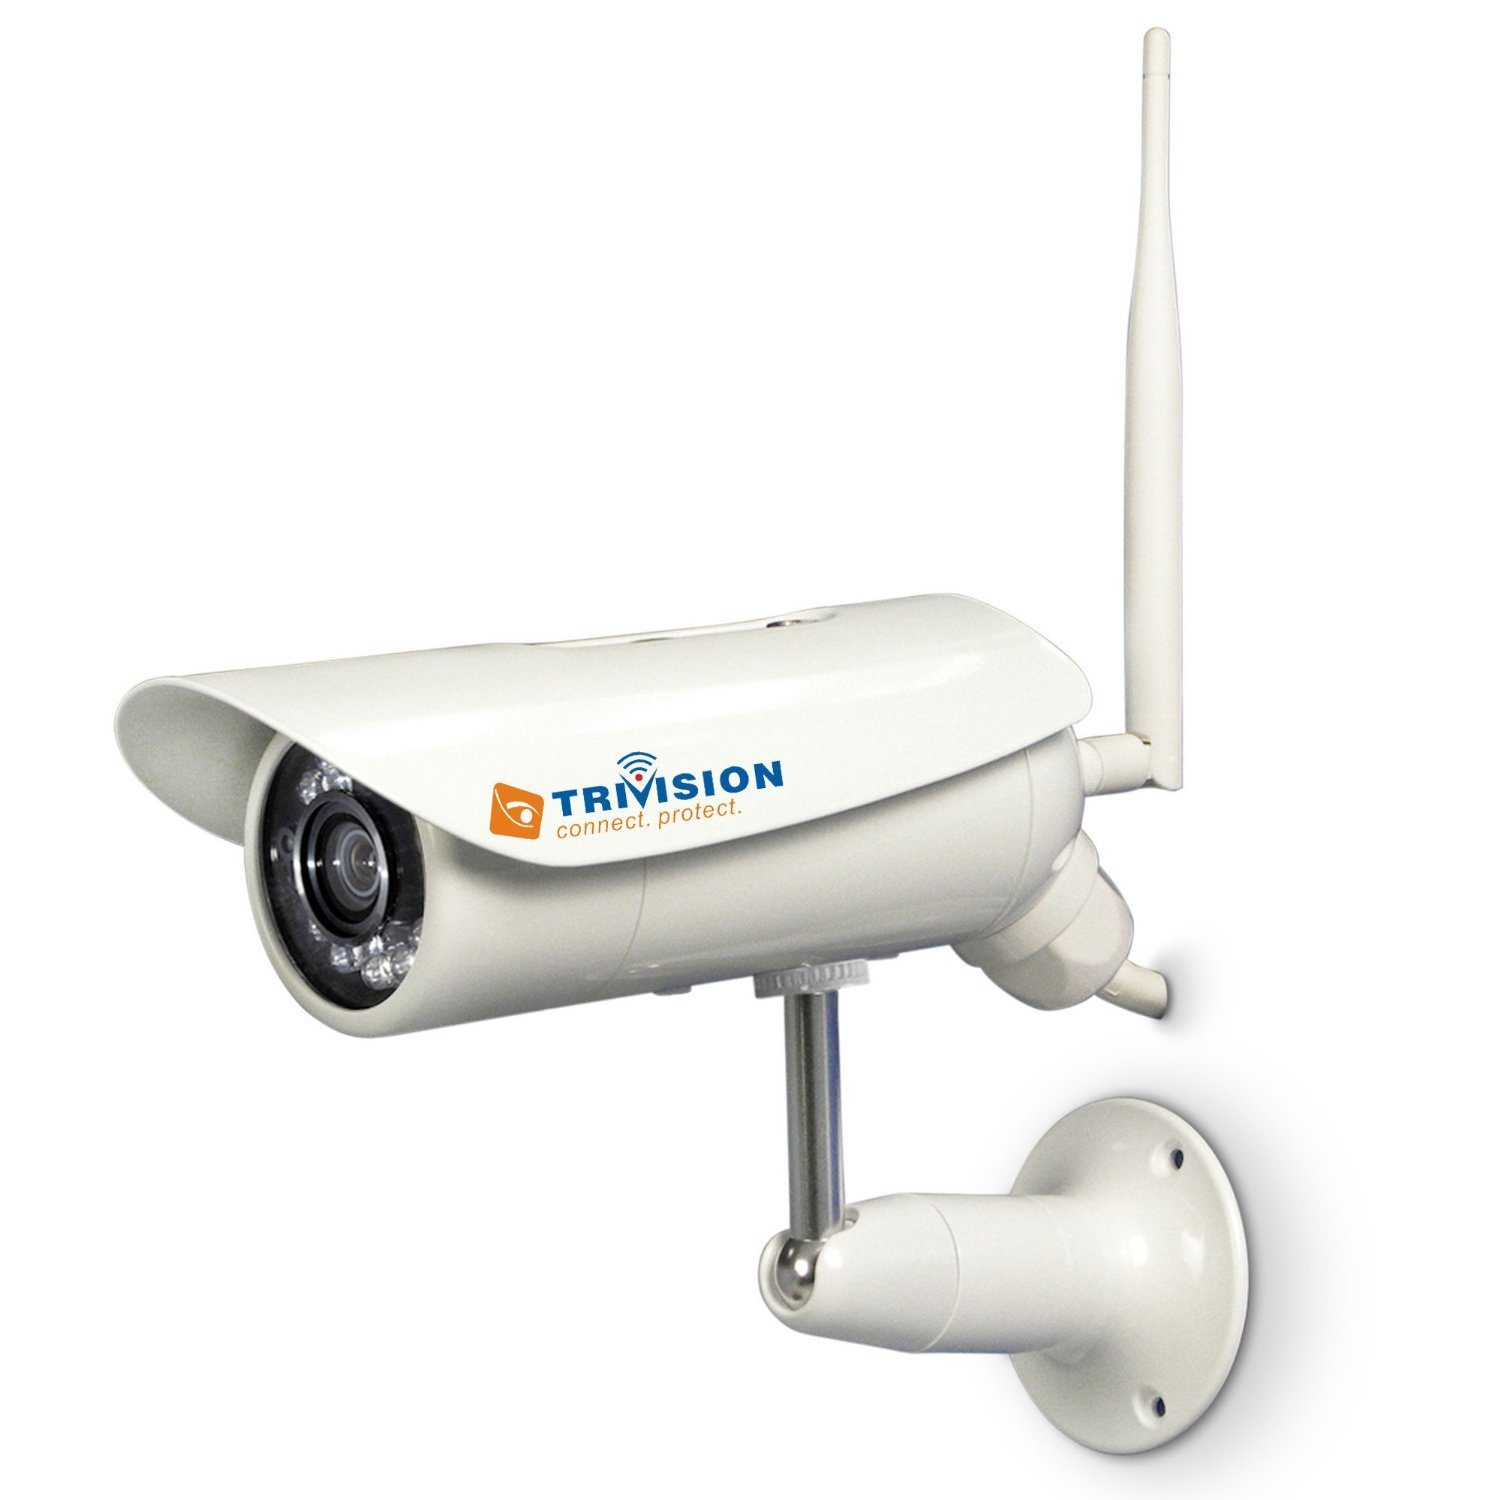 TriVision NC336PW HD 1080P Wireless Outdoor Home Security Camera